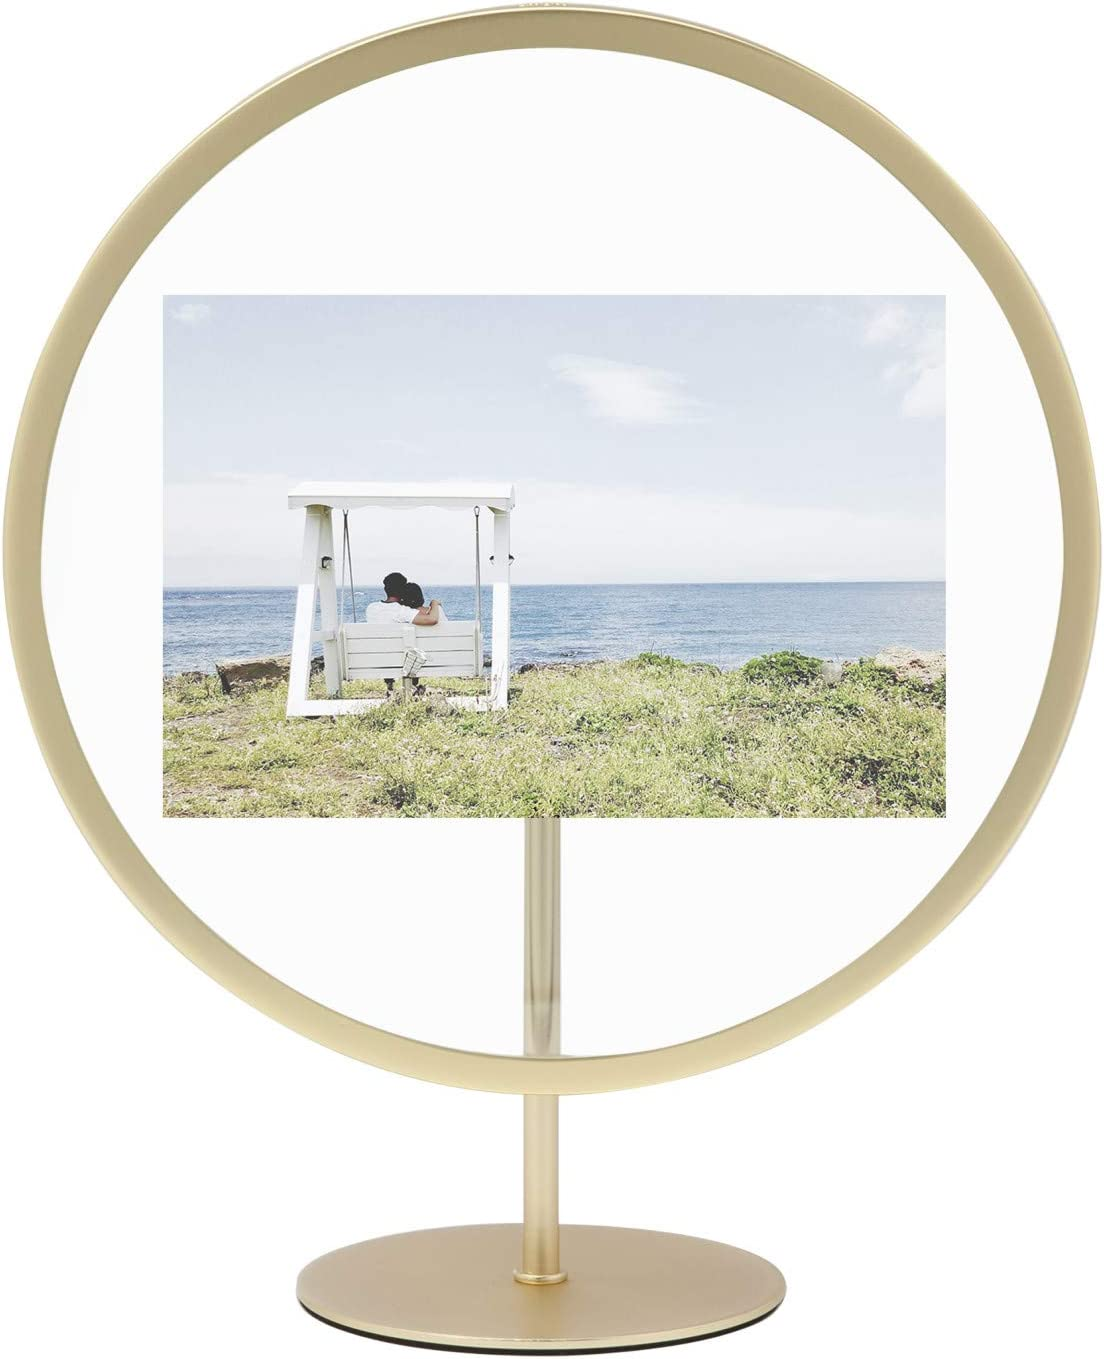 Umbra Infinity Picture Frame, Floating Photo Display for Desk or Wall, 4X6, MAT Bras